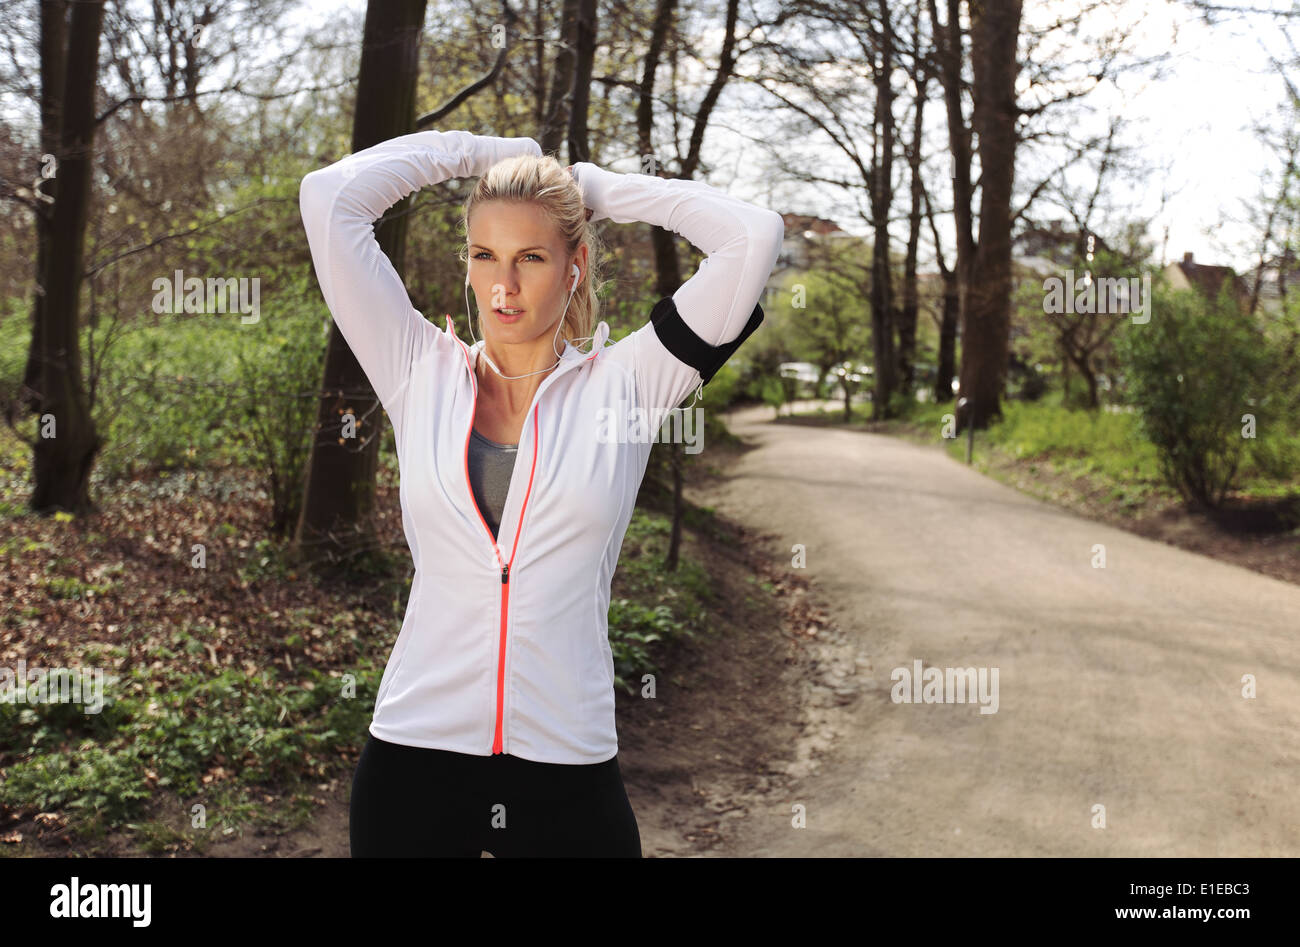 Young fitness woman tying hair before her run. Fit young female athlete focusing on her run in forest. - Stock Image